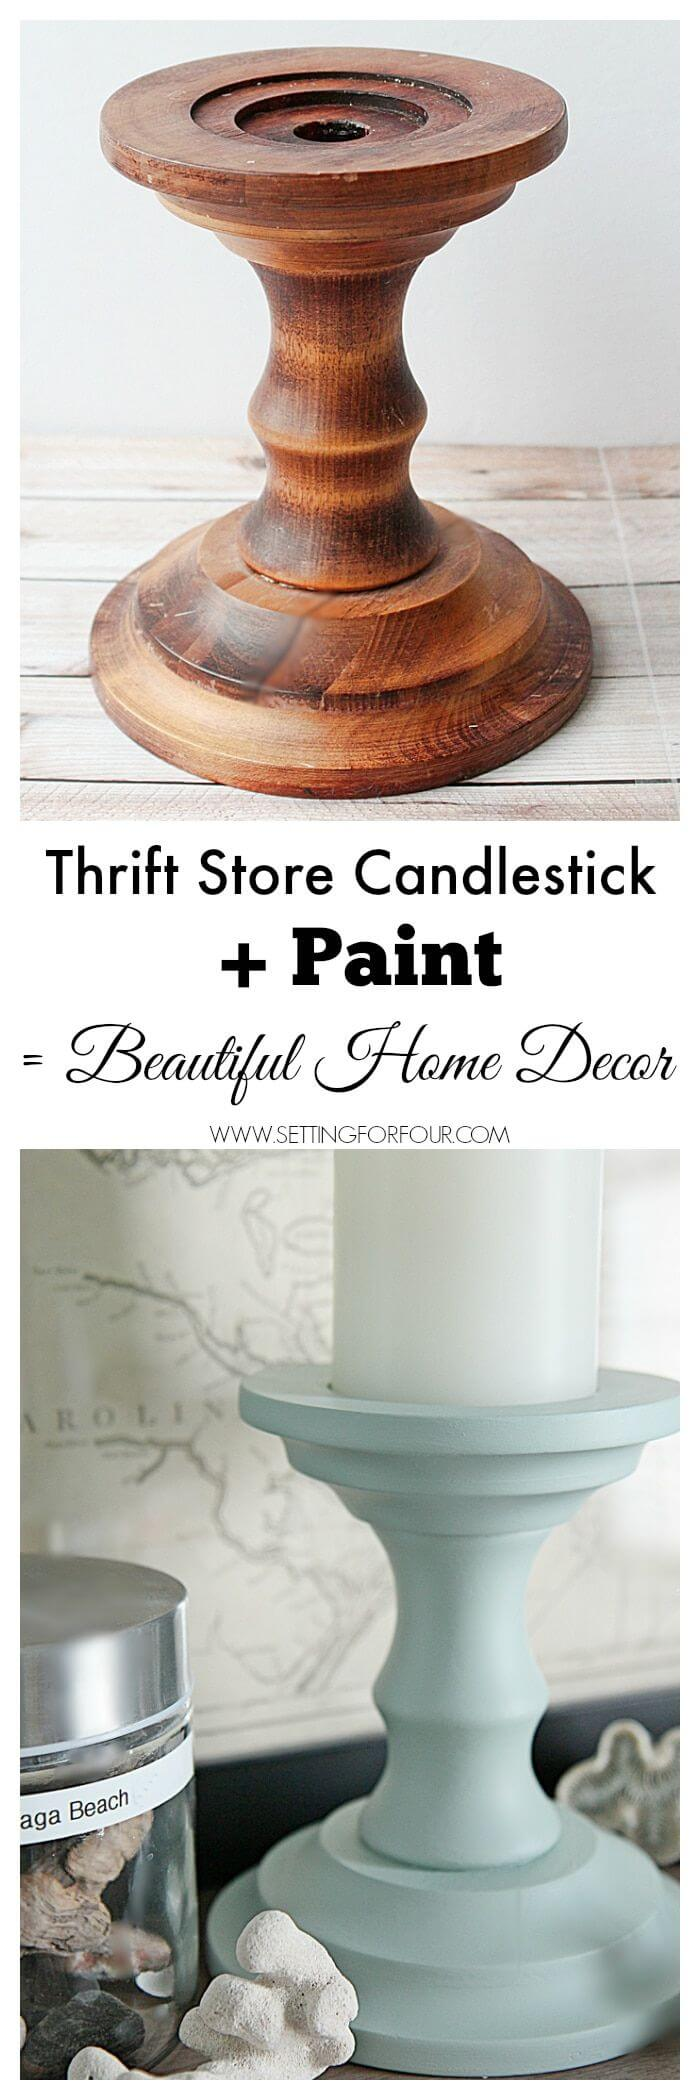 DIY Dollar Store Home Decor Ideas with Candles